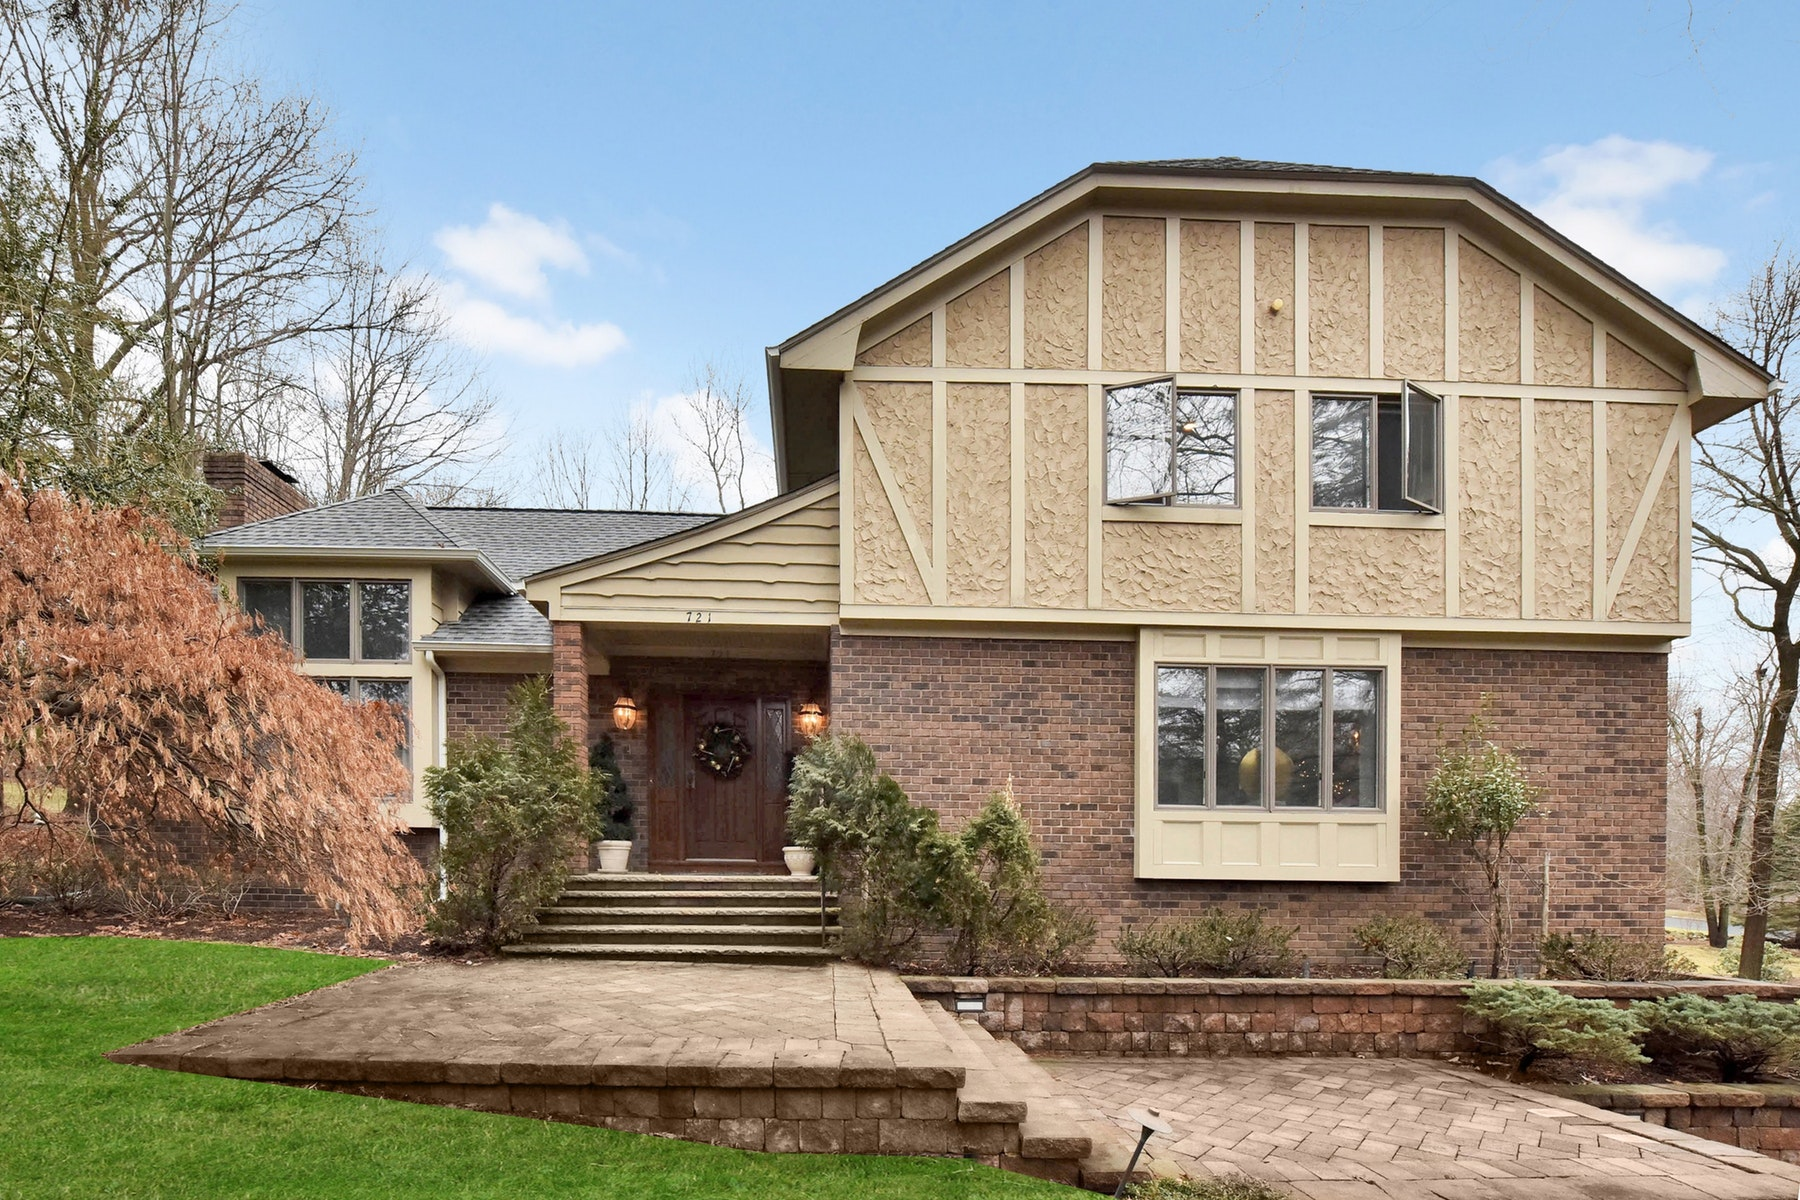 Single Family Home for Sale at Lovely Centerhall Colonial 721 Smoke Hollow Trail, Franklin Lakes, New Jersey, 07417 United States